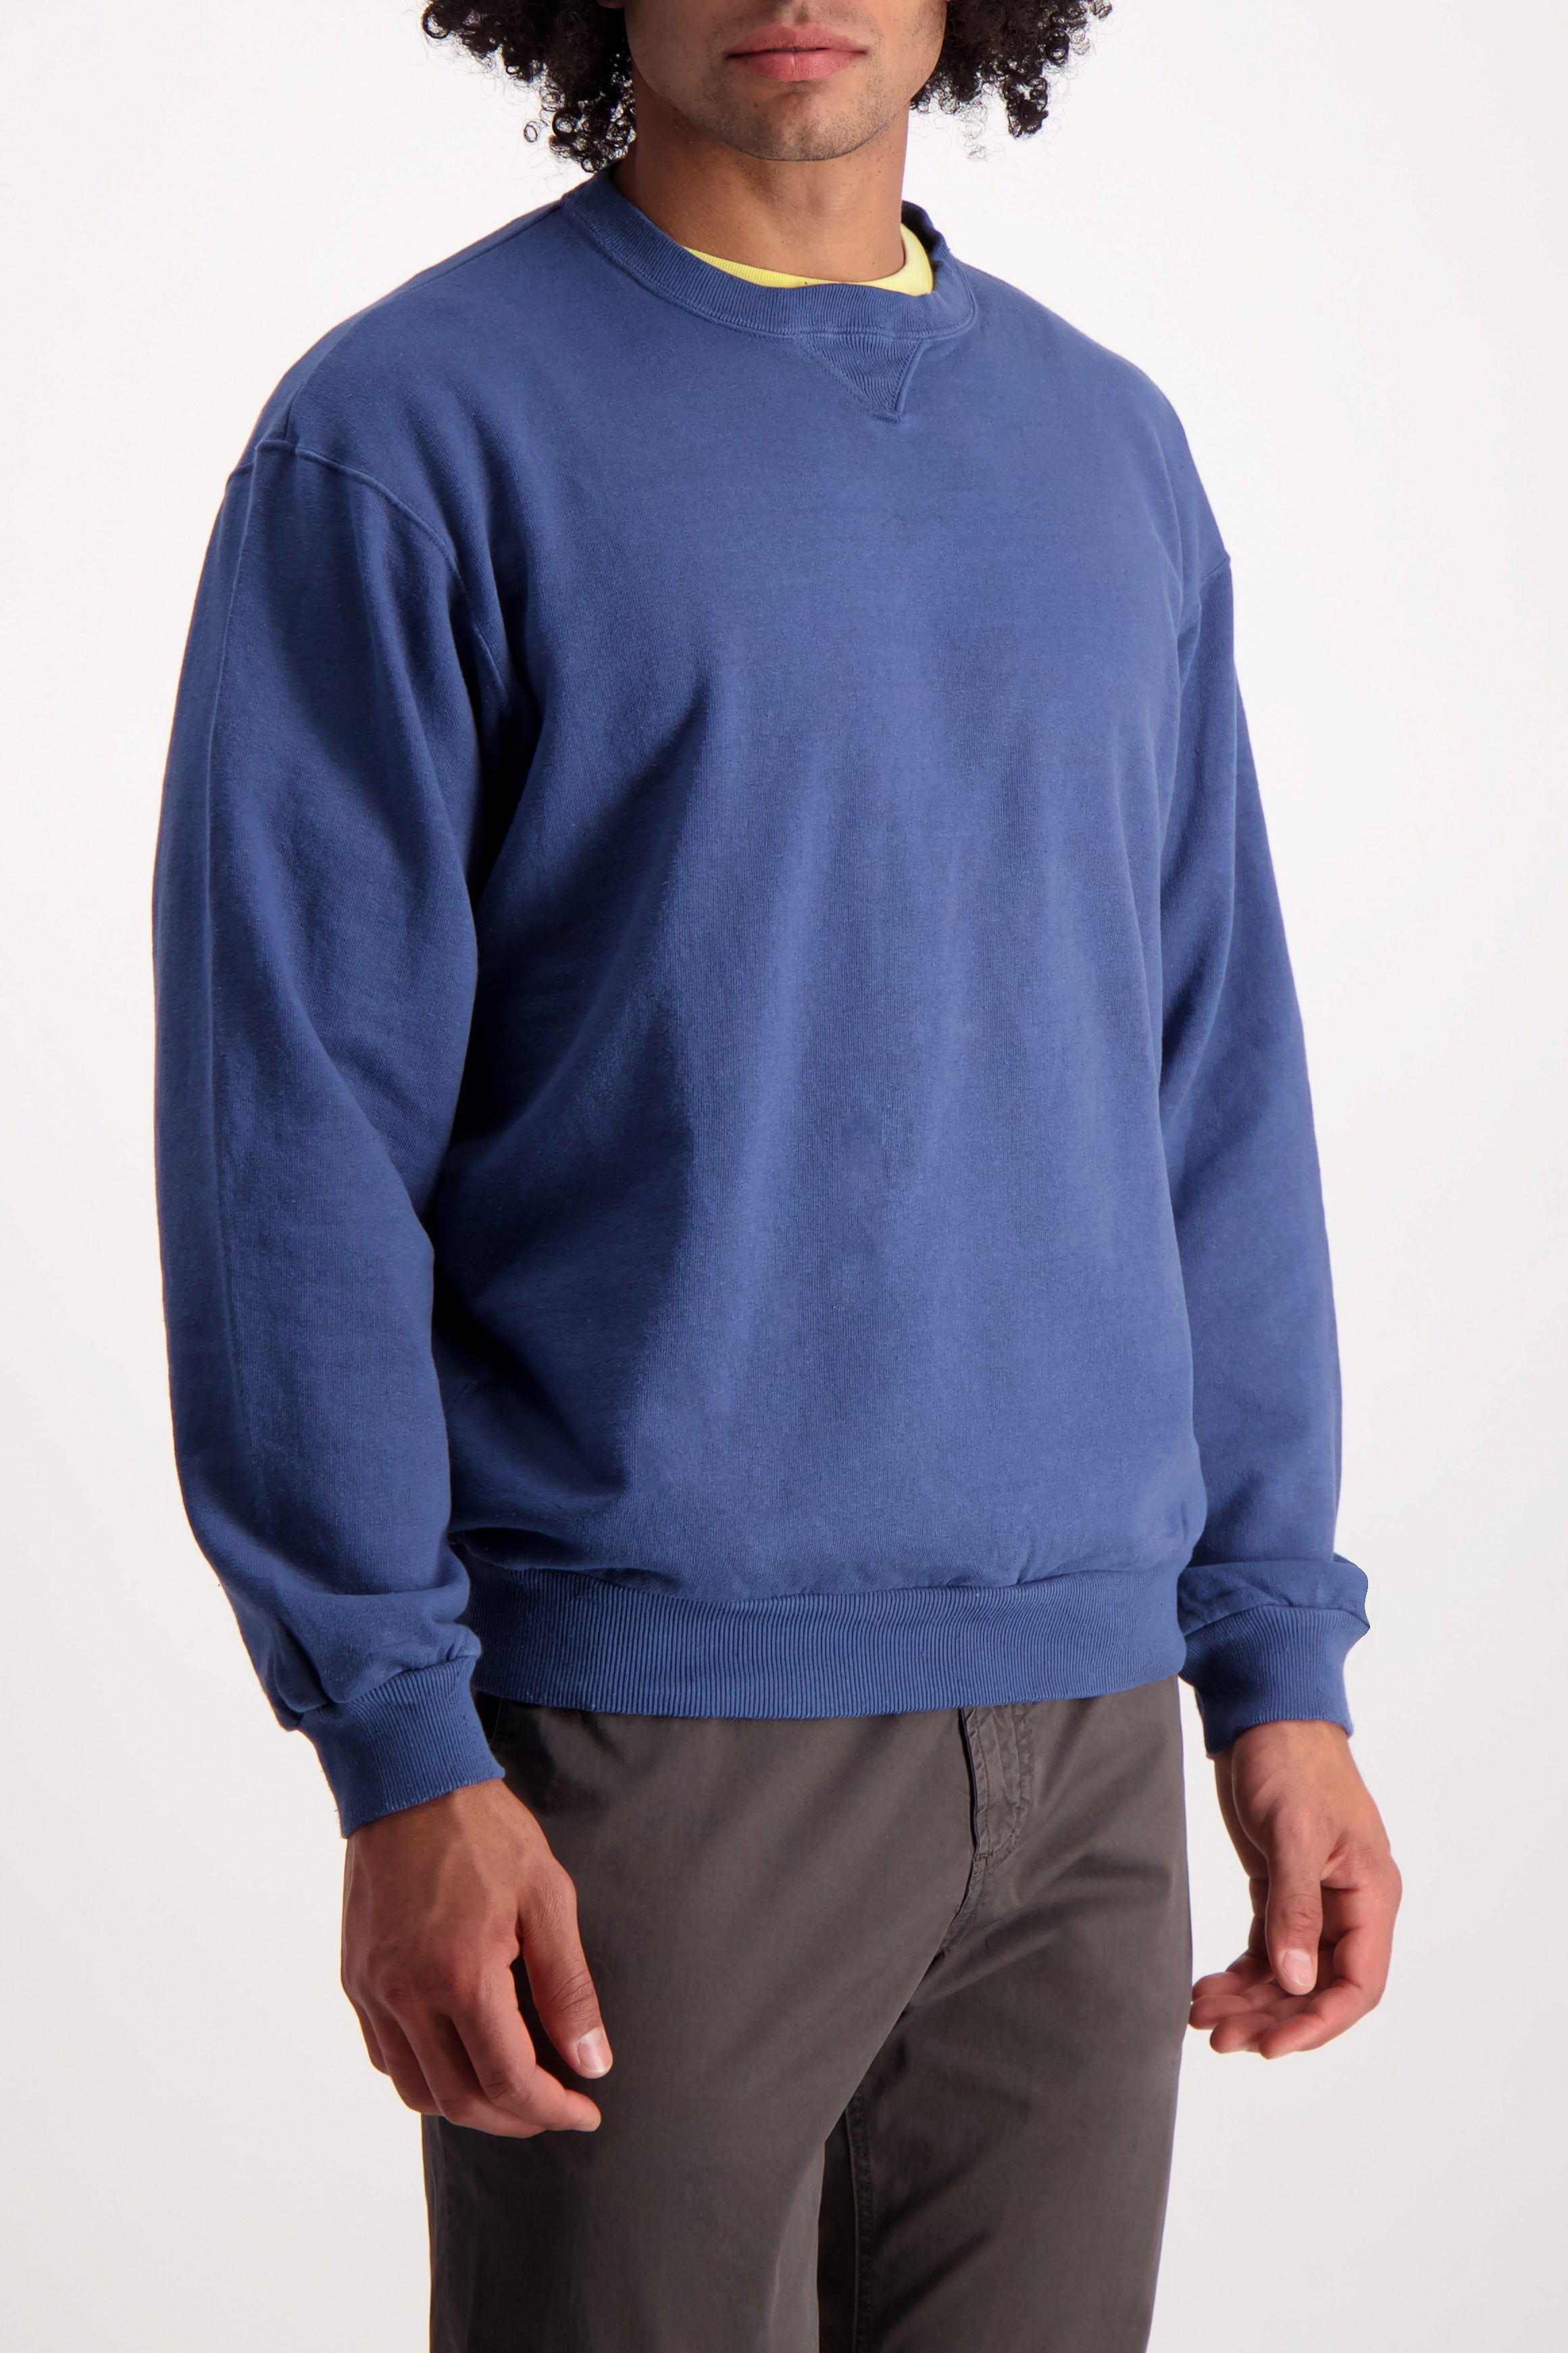 Front Crop Image Of Model Wearing Dubble Works Pocket Crewneck